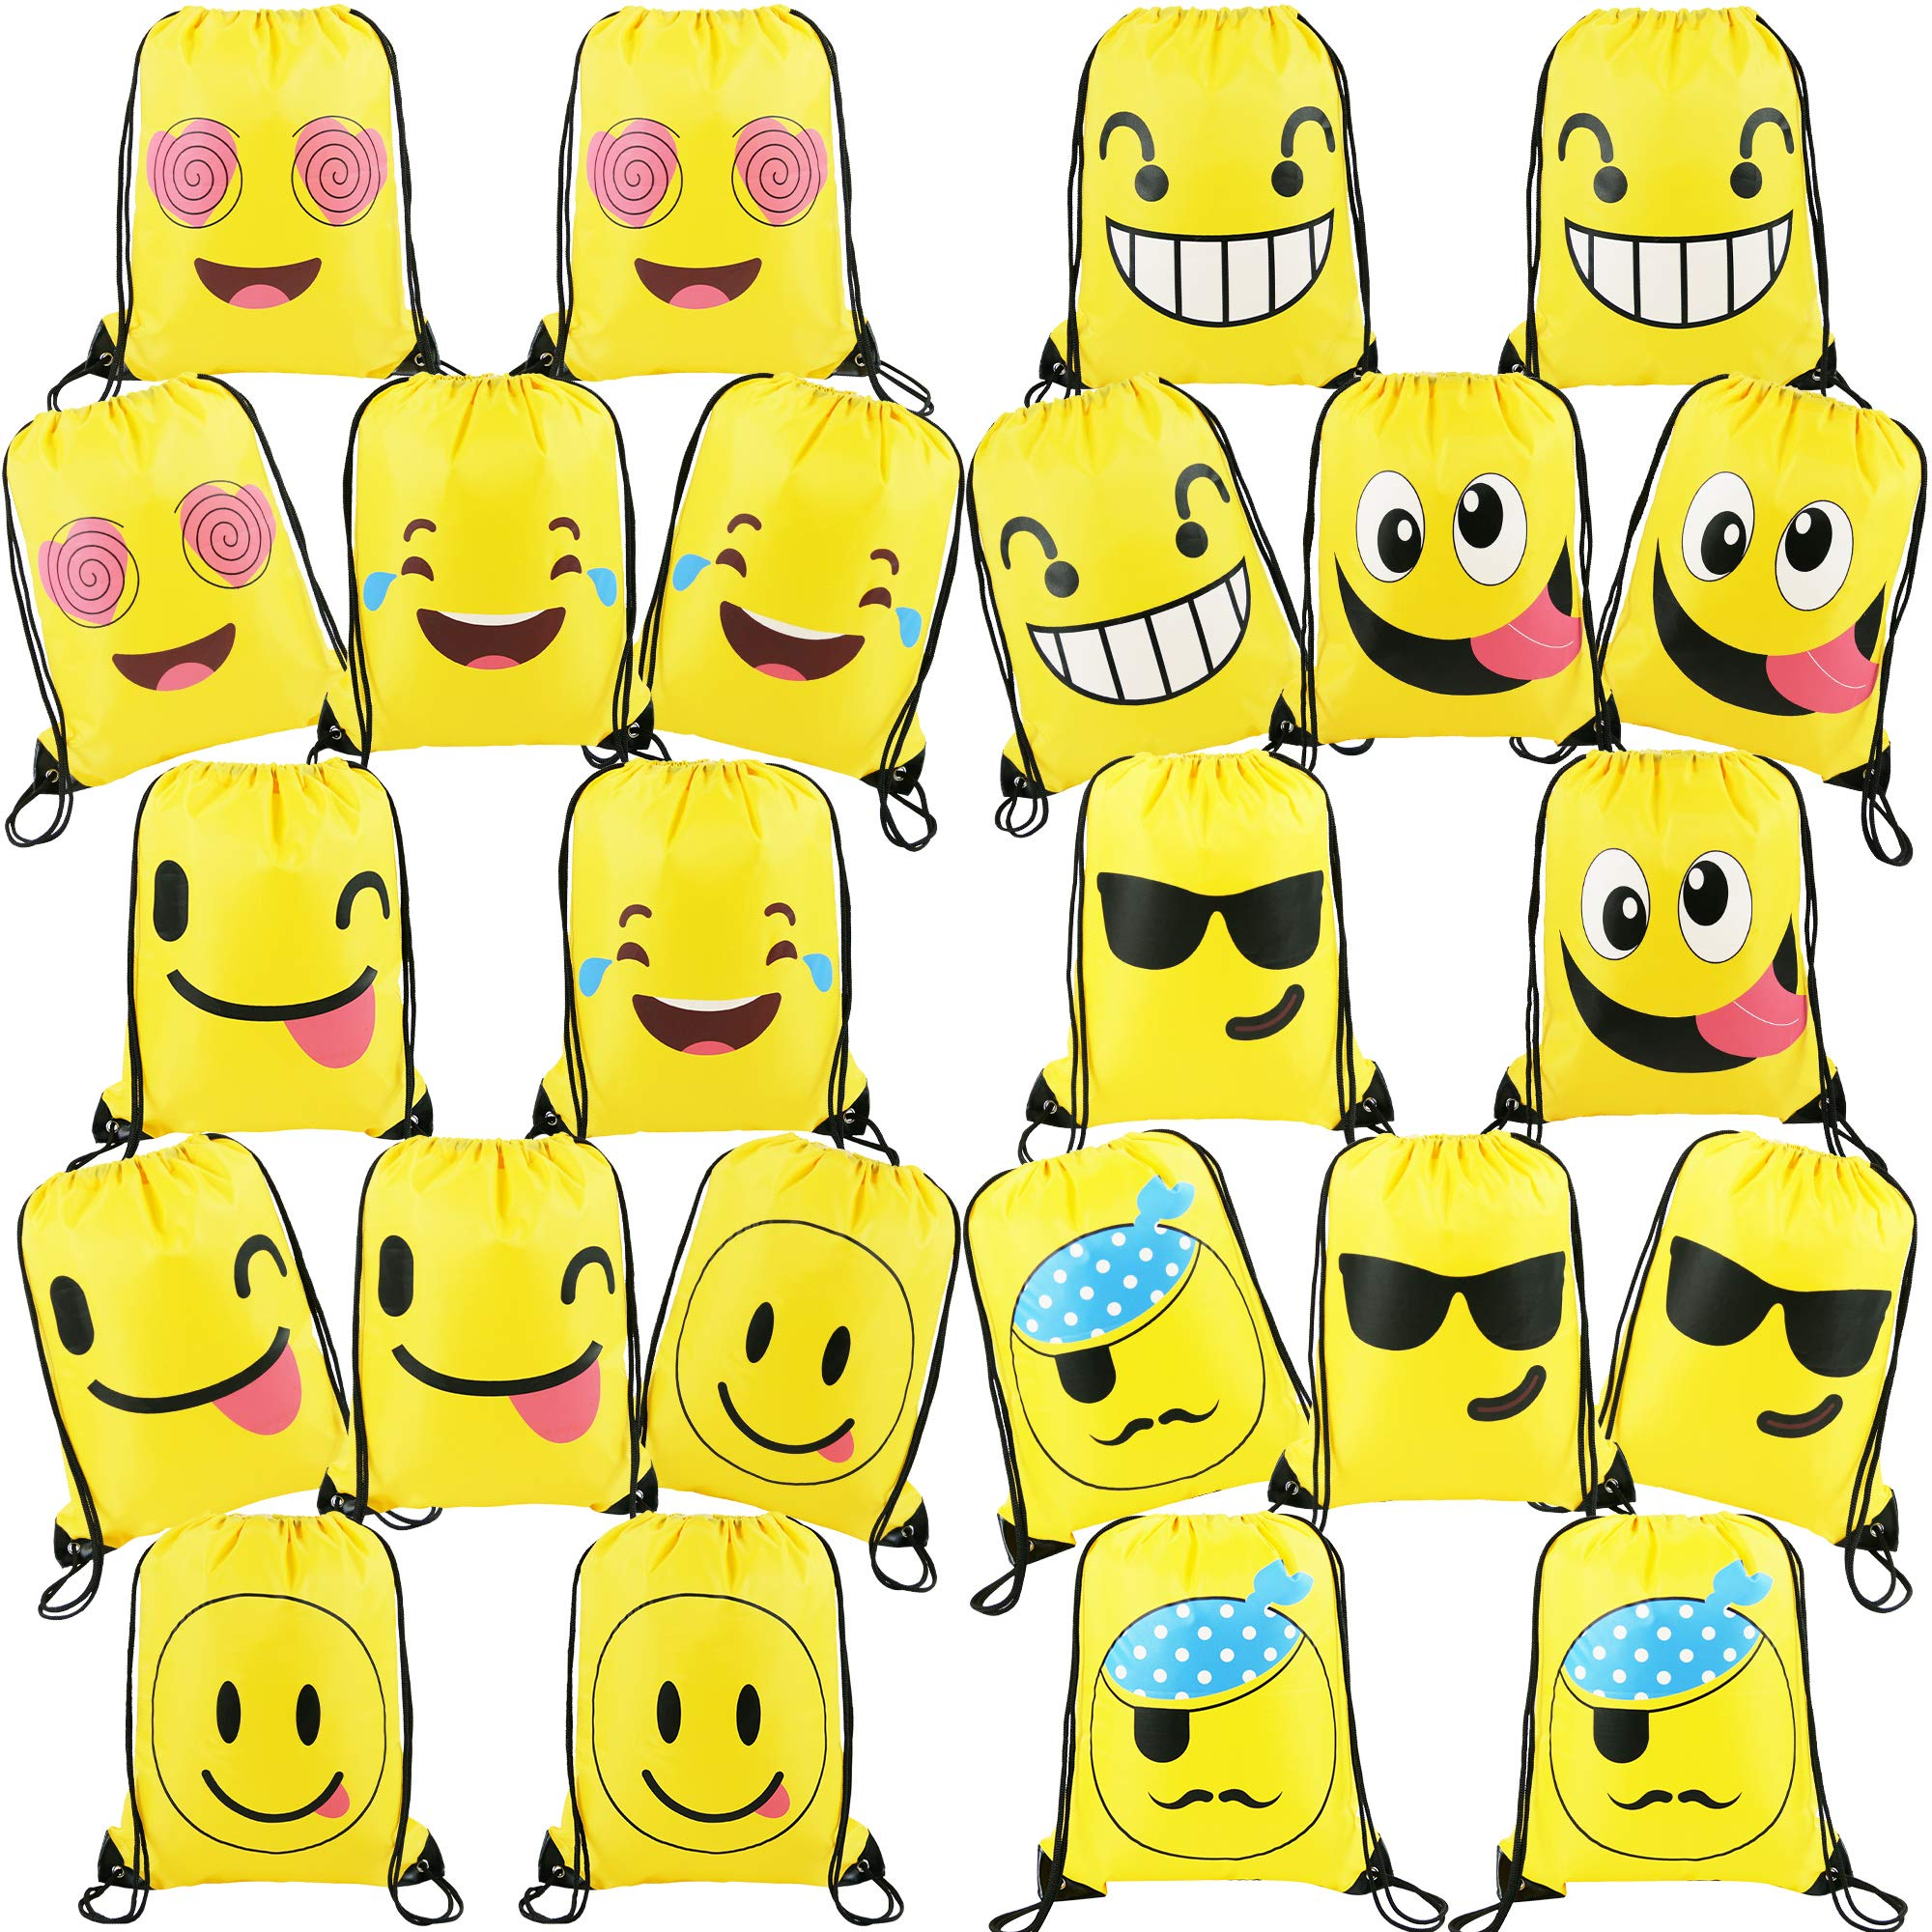 24 Pieces-Cute-Emoji-Party-Supplies-Favors-Bags Drawstring Backpacks for Teens Boys Girls Birthday Ideas Goody Gift Bag